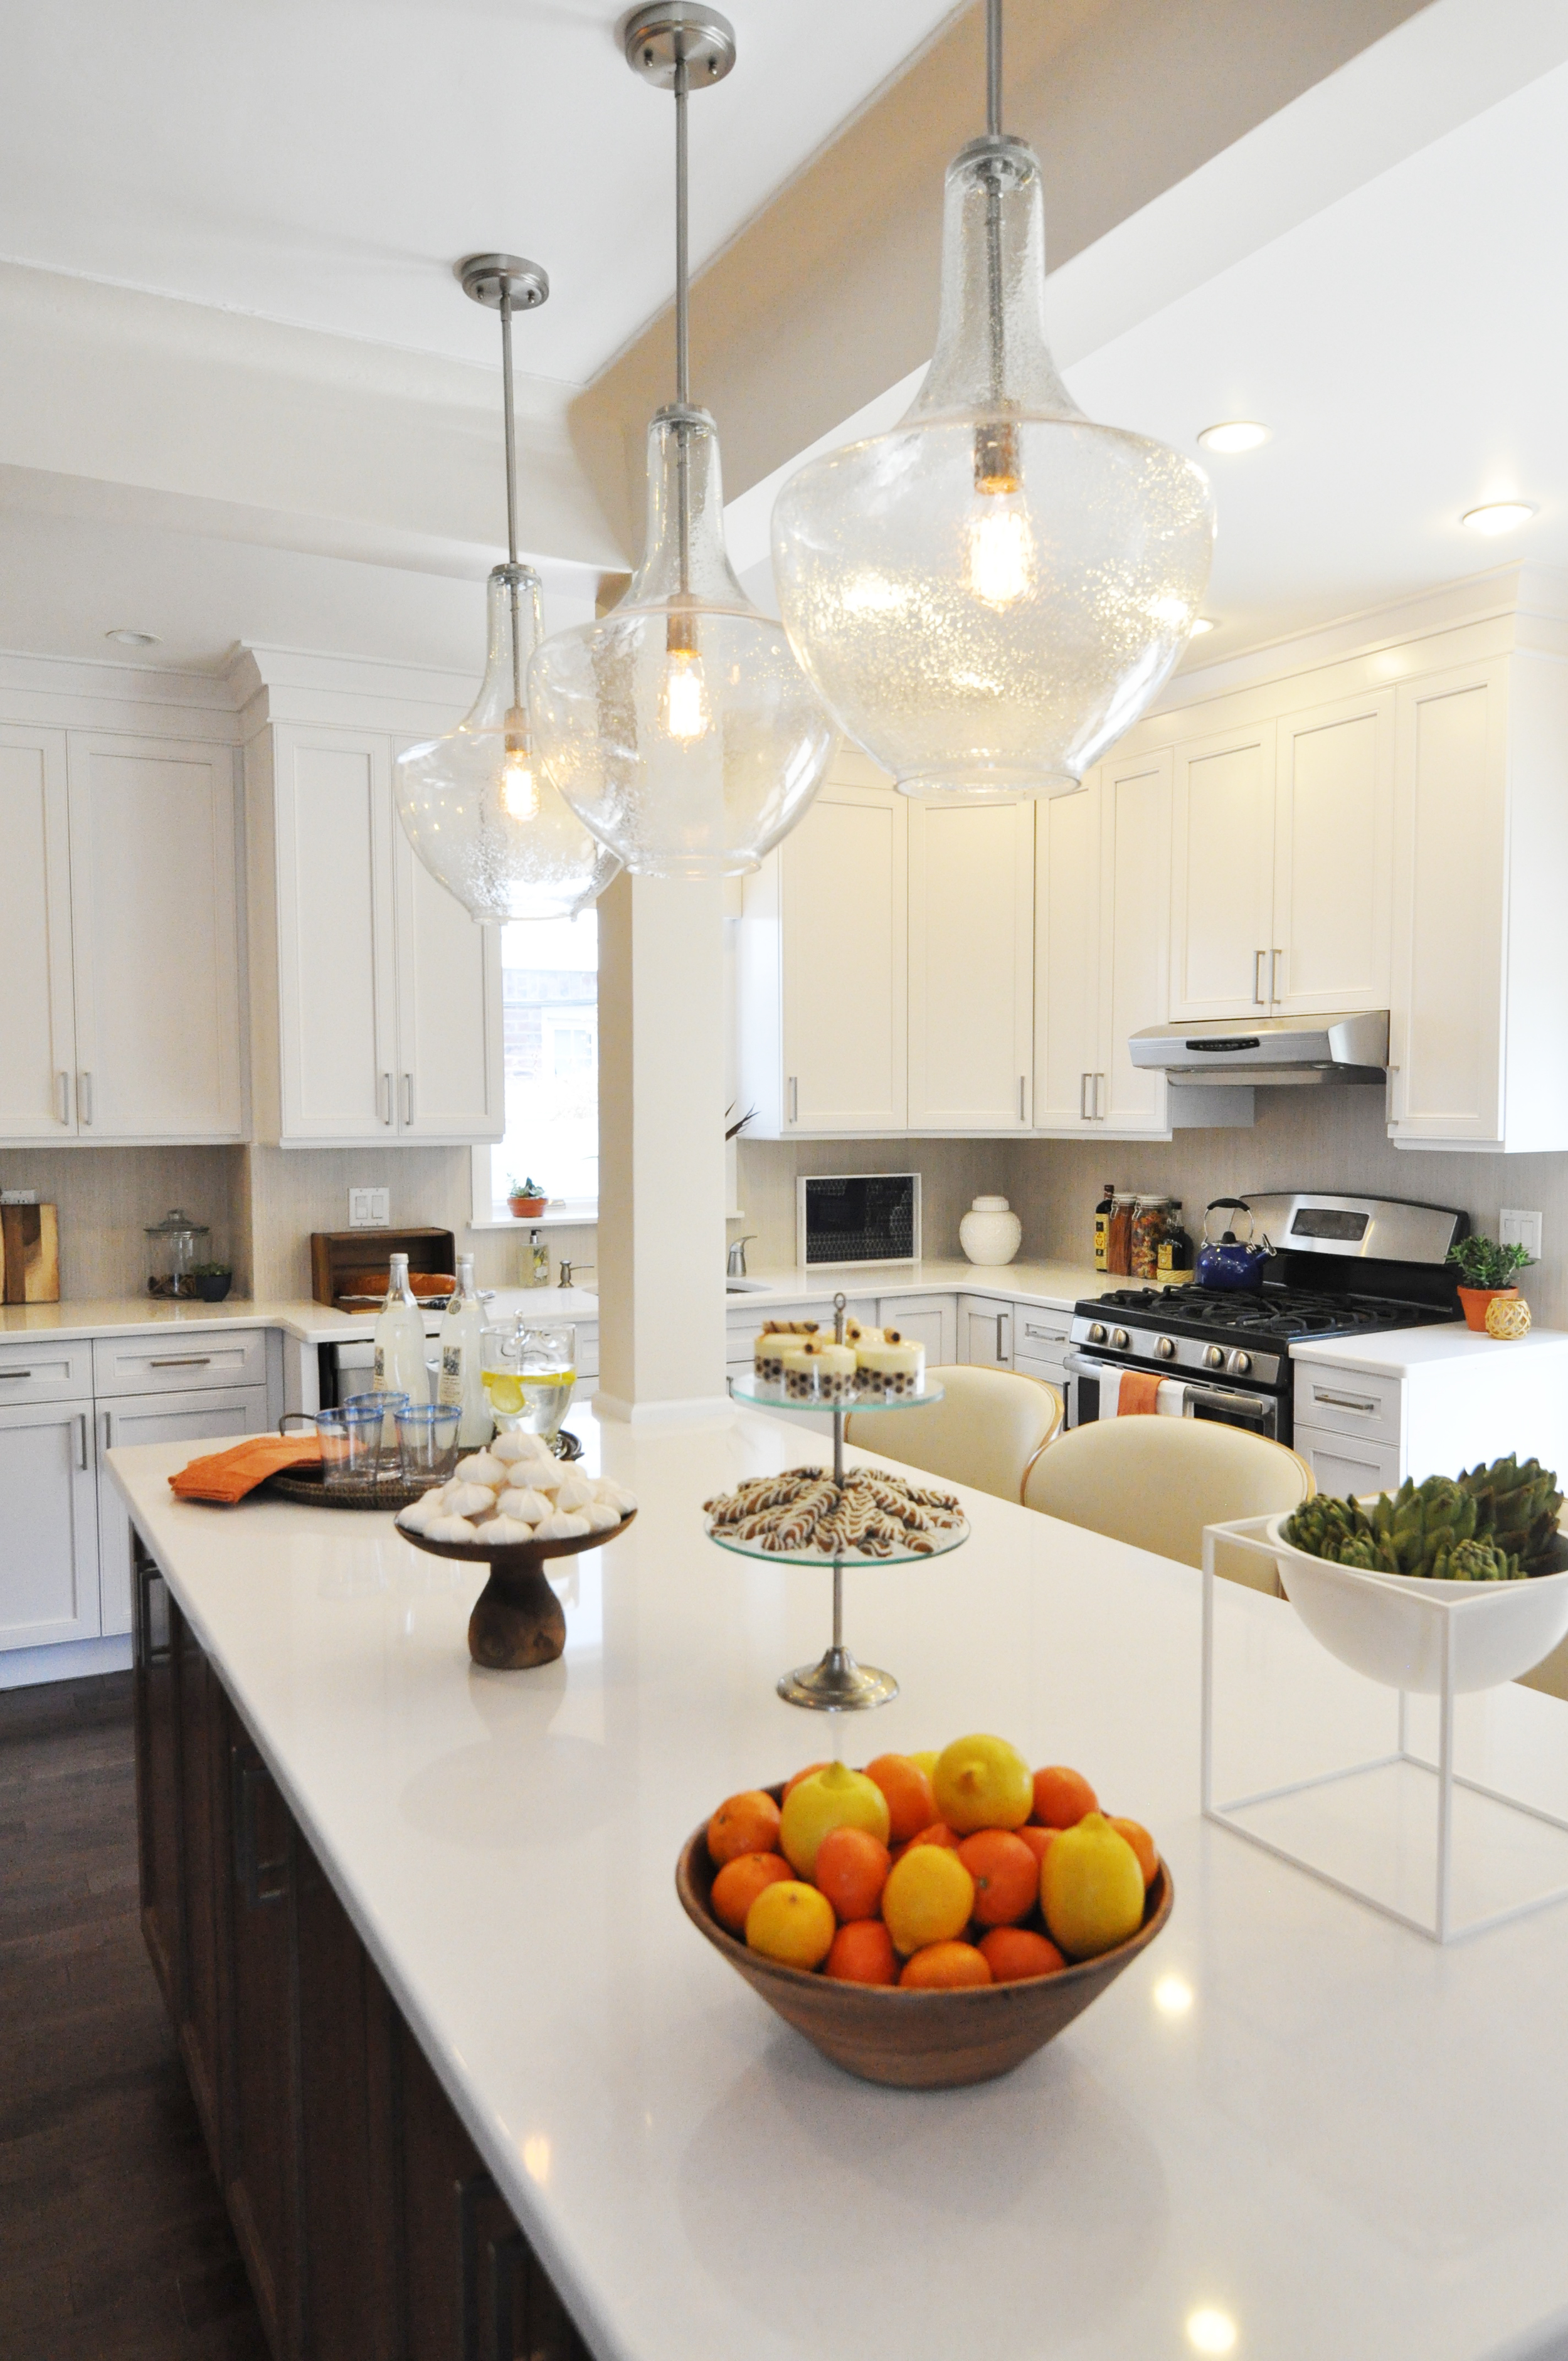 Kim Mitchell Production Designer_HGTV_Buying and Selling with The Property Brothers_Season 3_Episode 315_Kitchen Island_Clear Glass Pendant Lighting_White Kitchen Cabinets_Staging.jpg